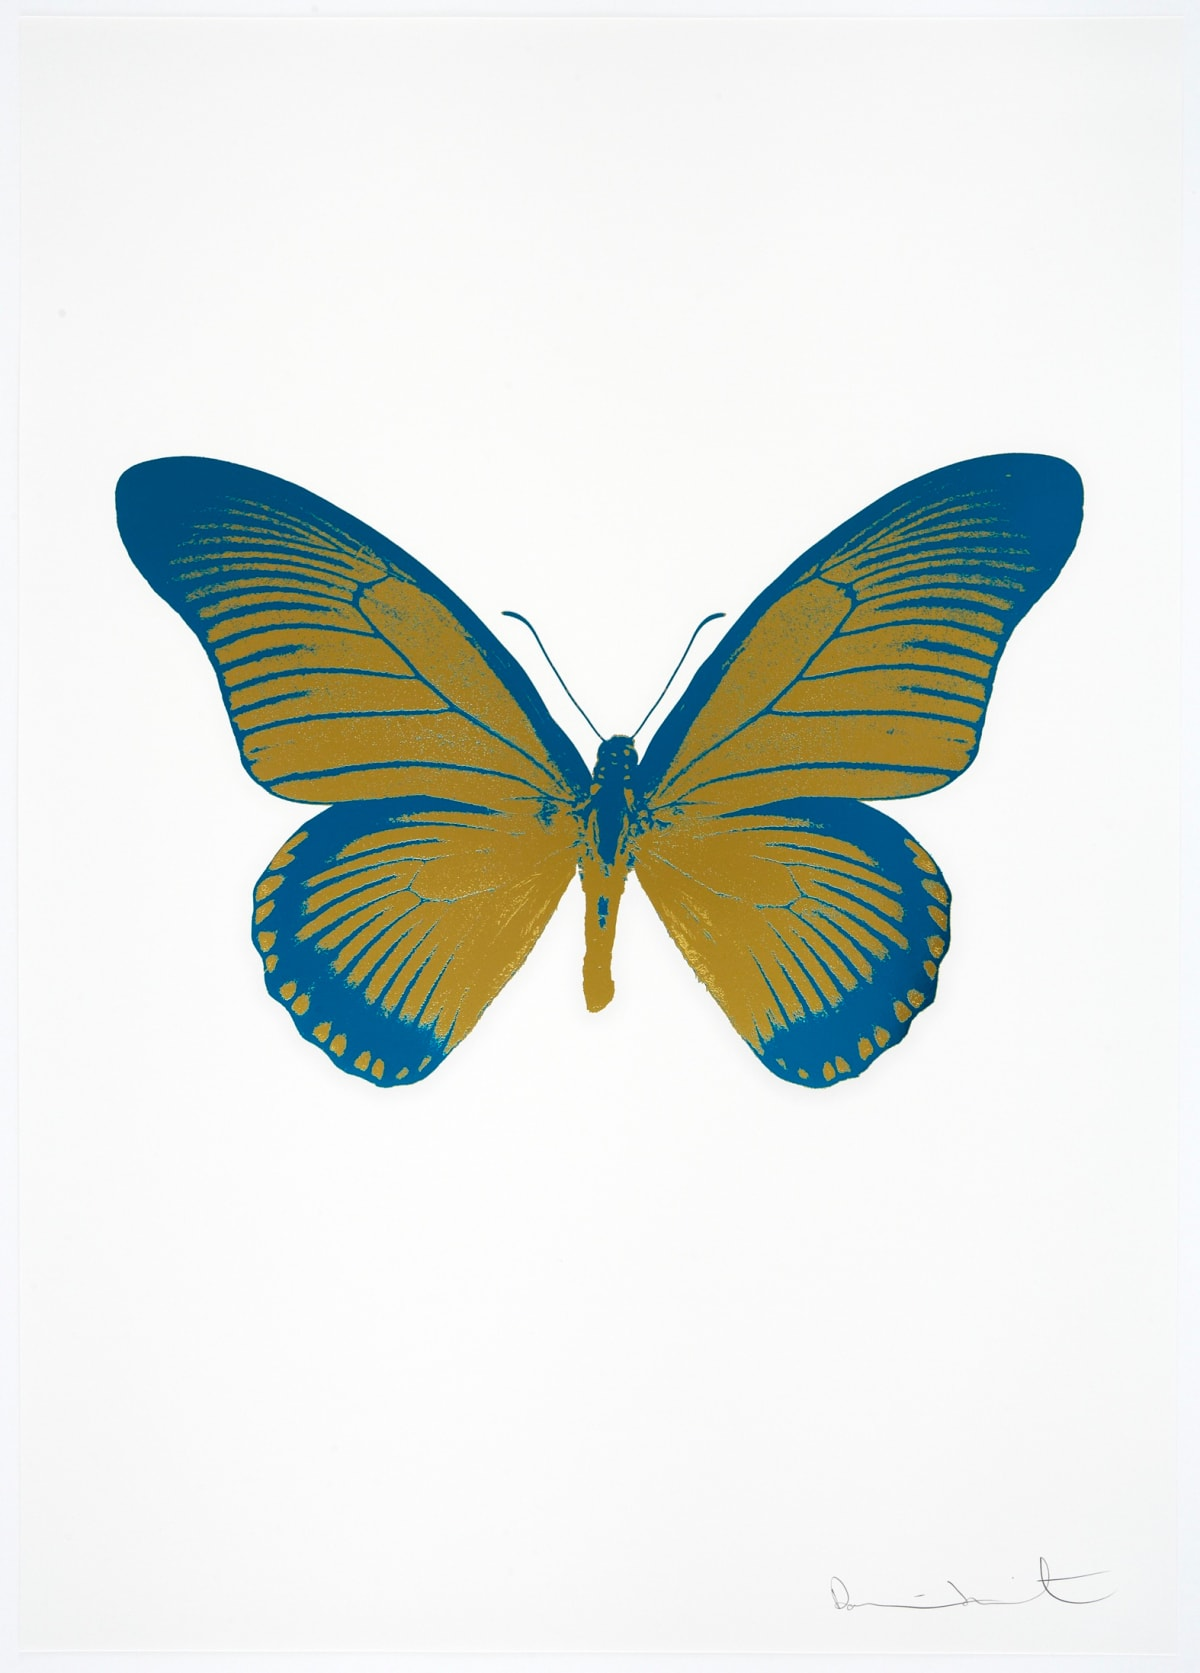 Damien Hirst The Souls IV - Oriental Gold/Turquoise Damien Hirst butterfly foil print for sale Damien Hirst print for sale , 2010 2 colour foil block on 300gsm Arches 88 archival paper. Signed and numbered. Published by Paul Stolper and Other Criteria 72 x 51cm OC7993 / 1418-16 Edition of 15